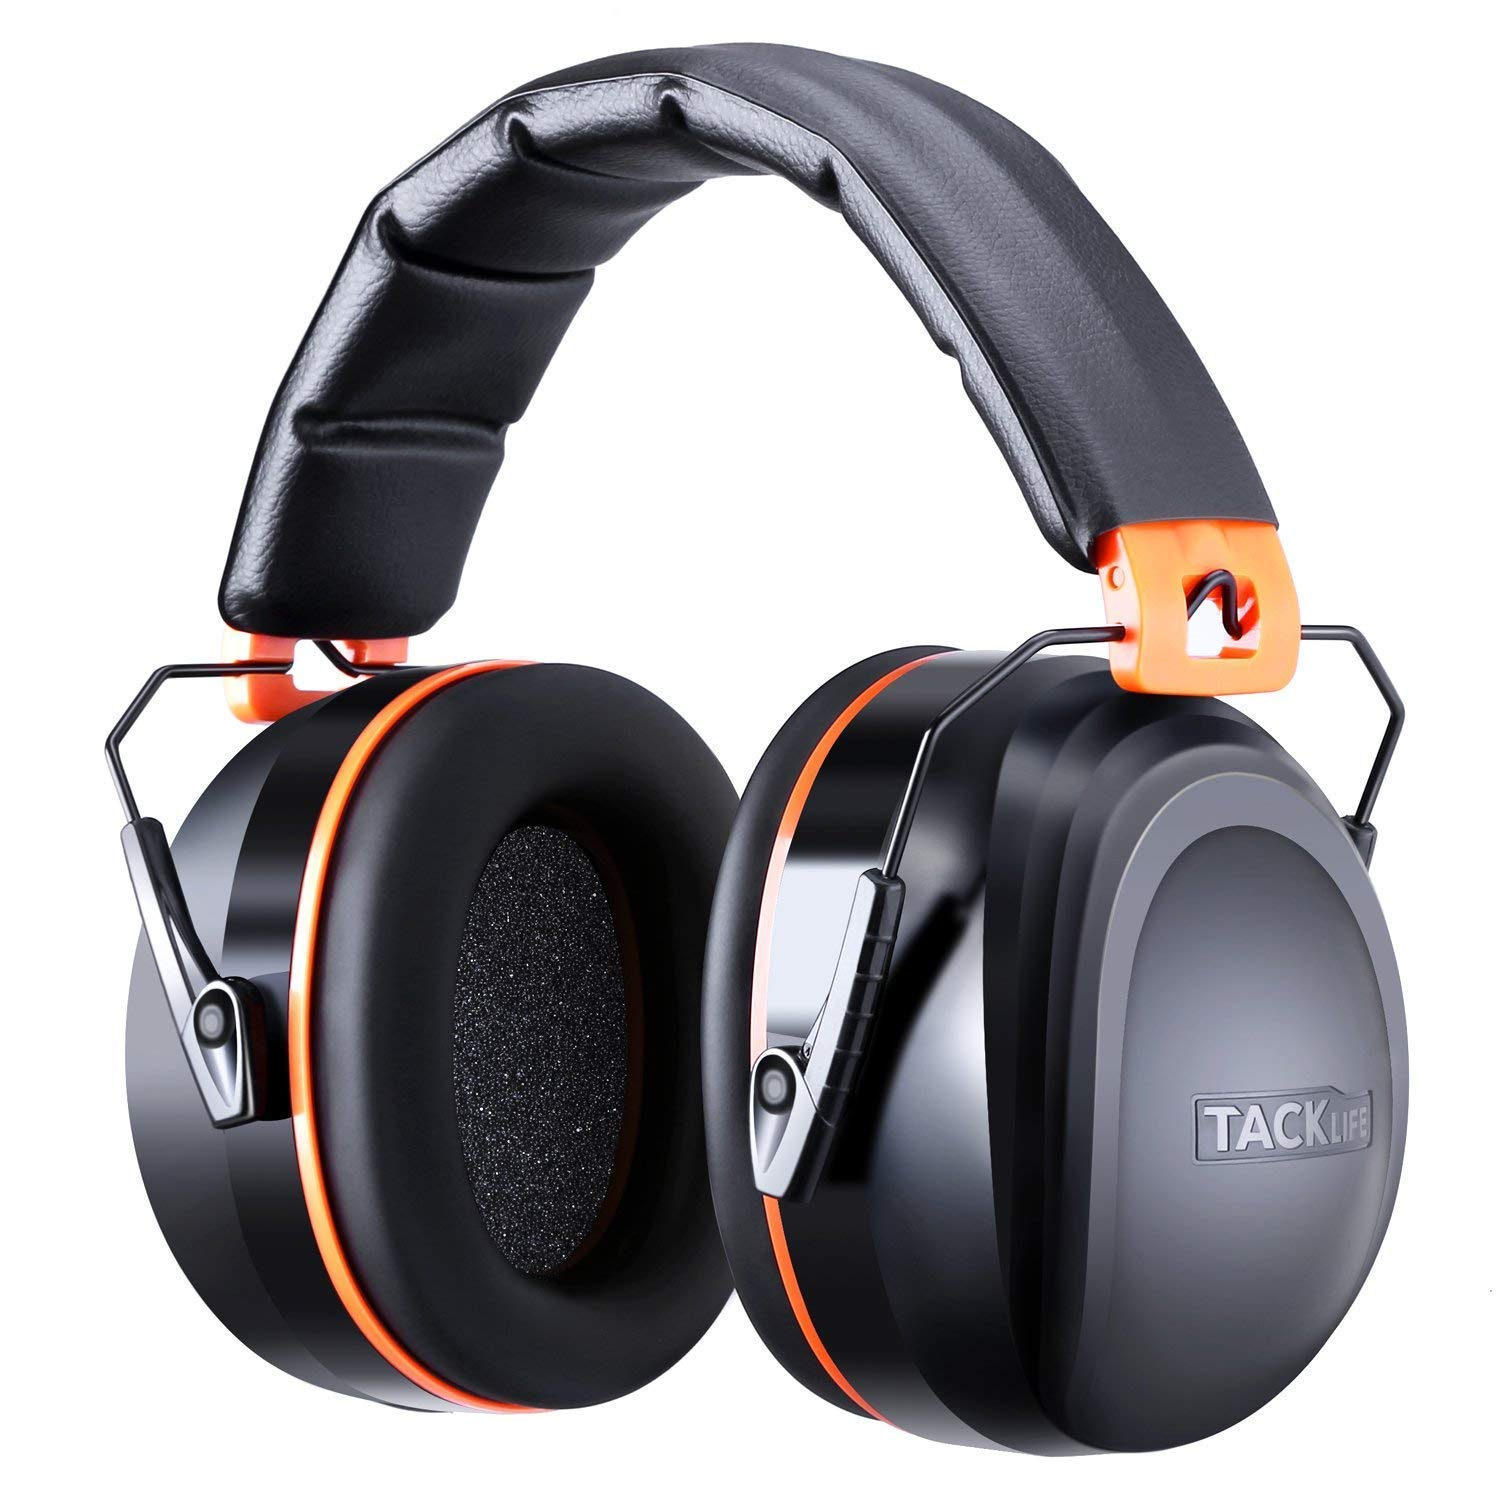 Tacklife HNRE1, Noise Canceling Ear Muffs for Shooting, Construction or Yard Work